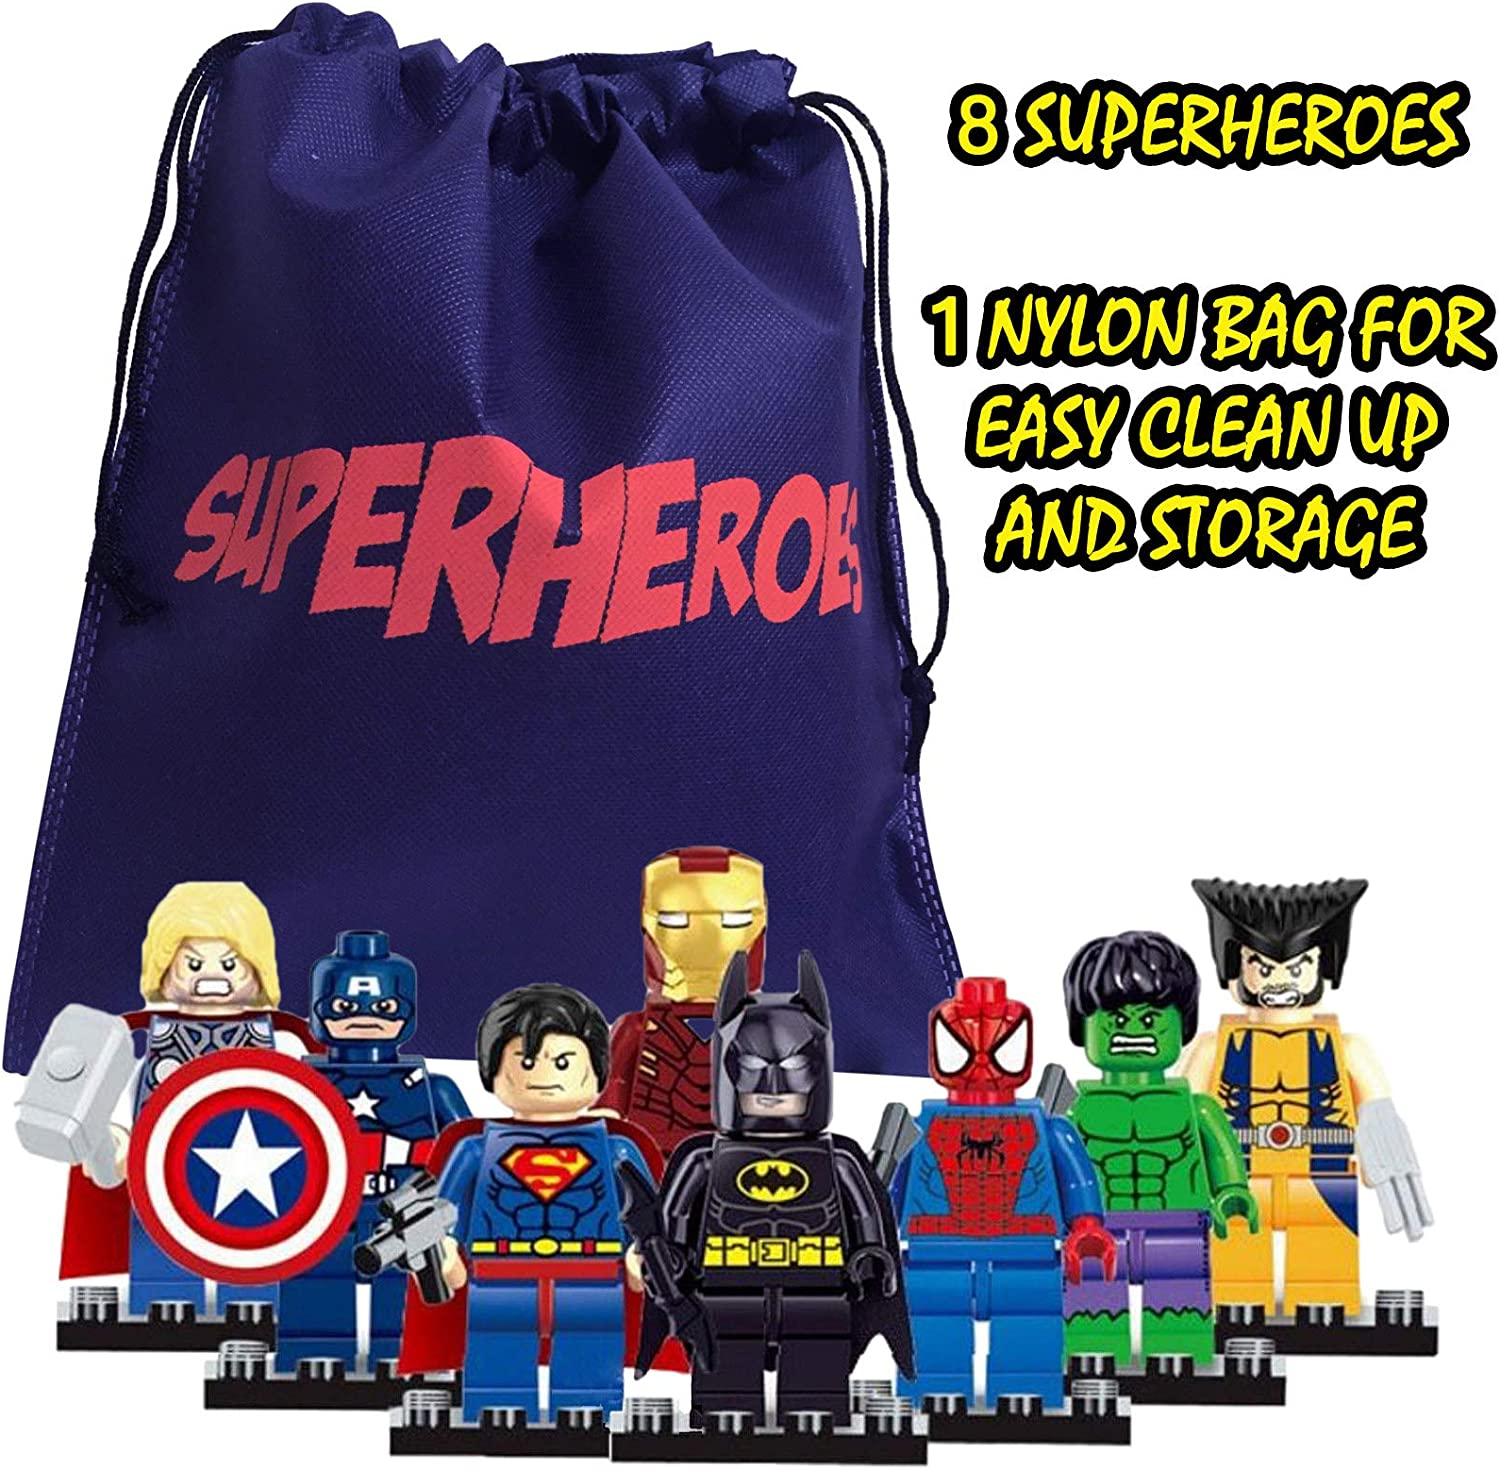 fat cat sales Superhero Mini Building Block Action Figures 8 PCS with A Bag for Quick Clean UP - Building Blocks are Interlocking & Fun to Assemble - Interchange The Pieces for New Looks